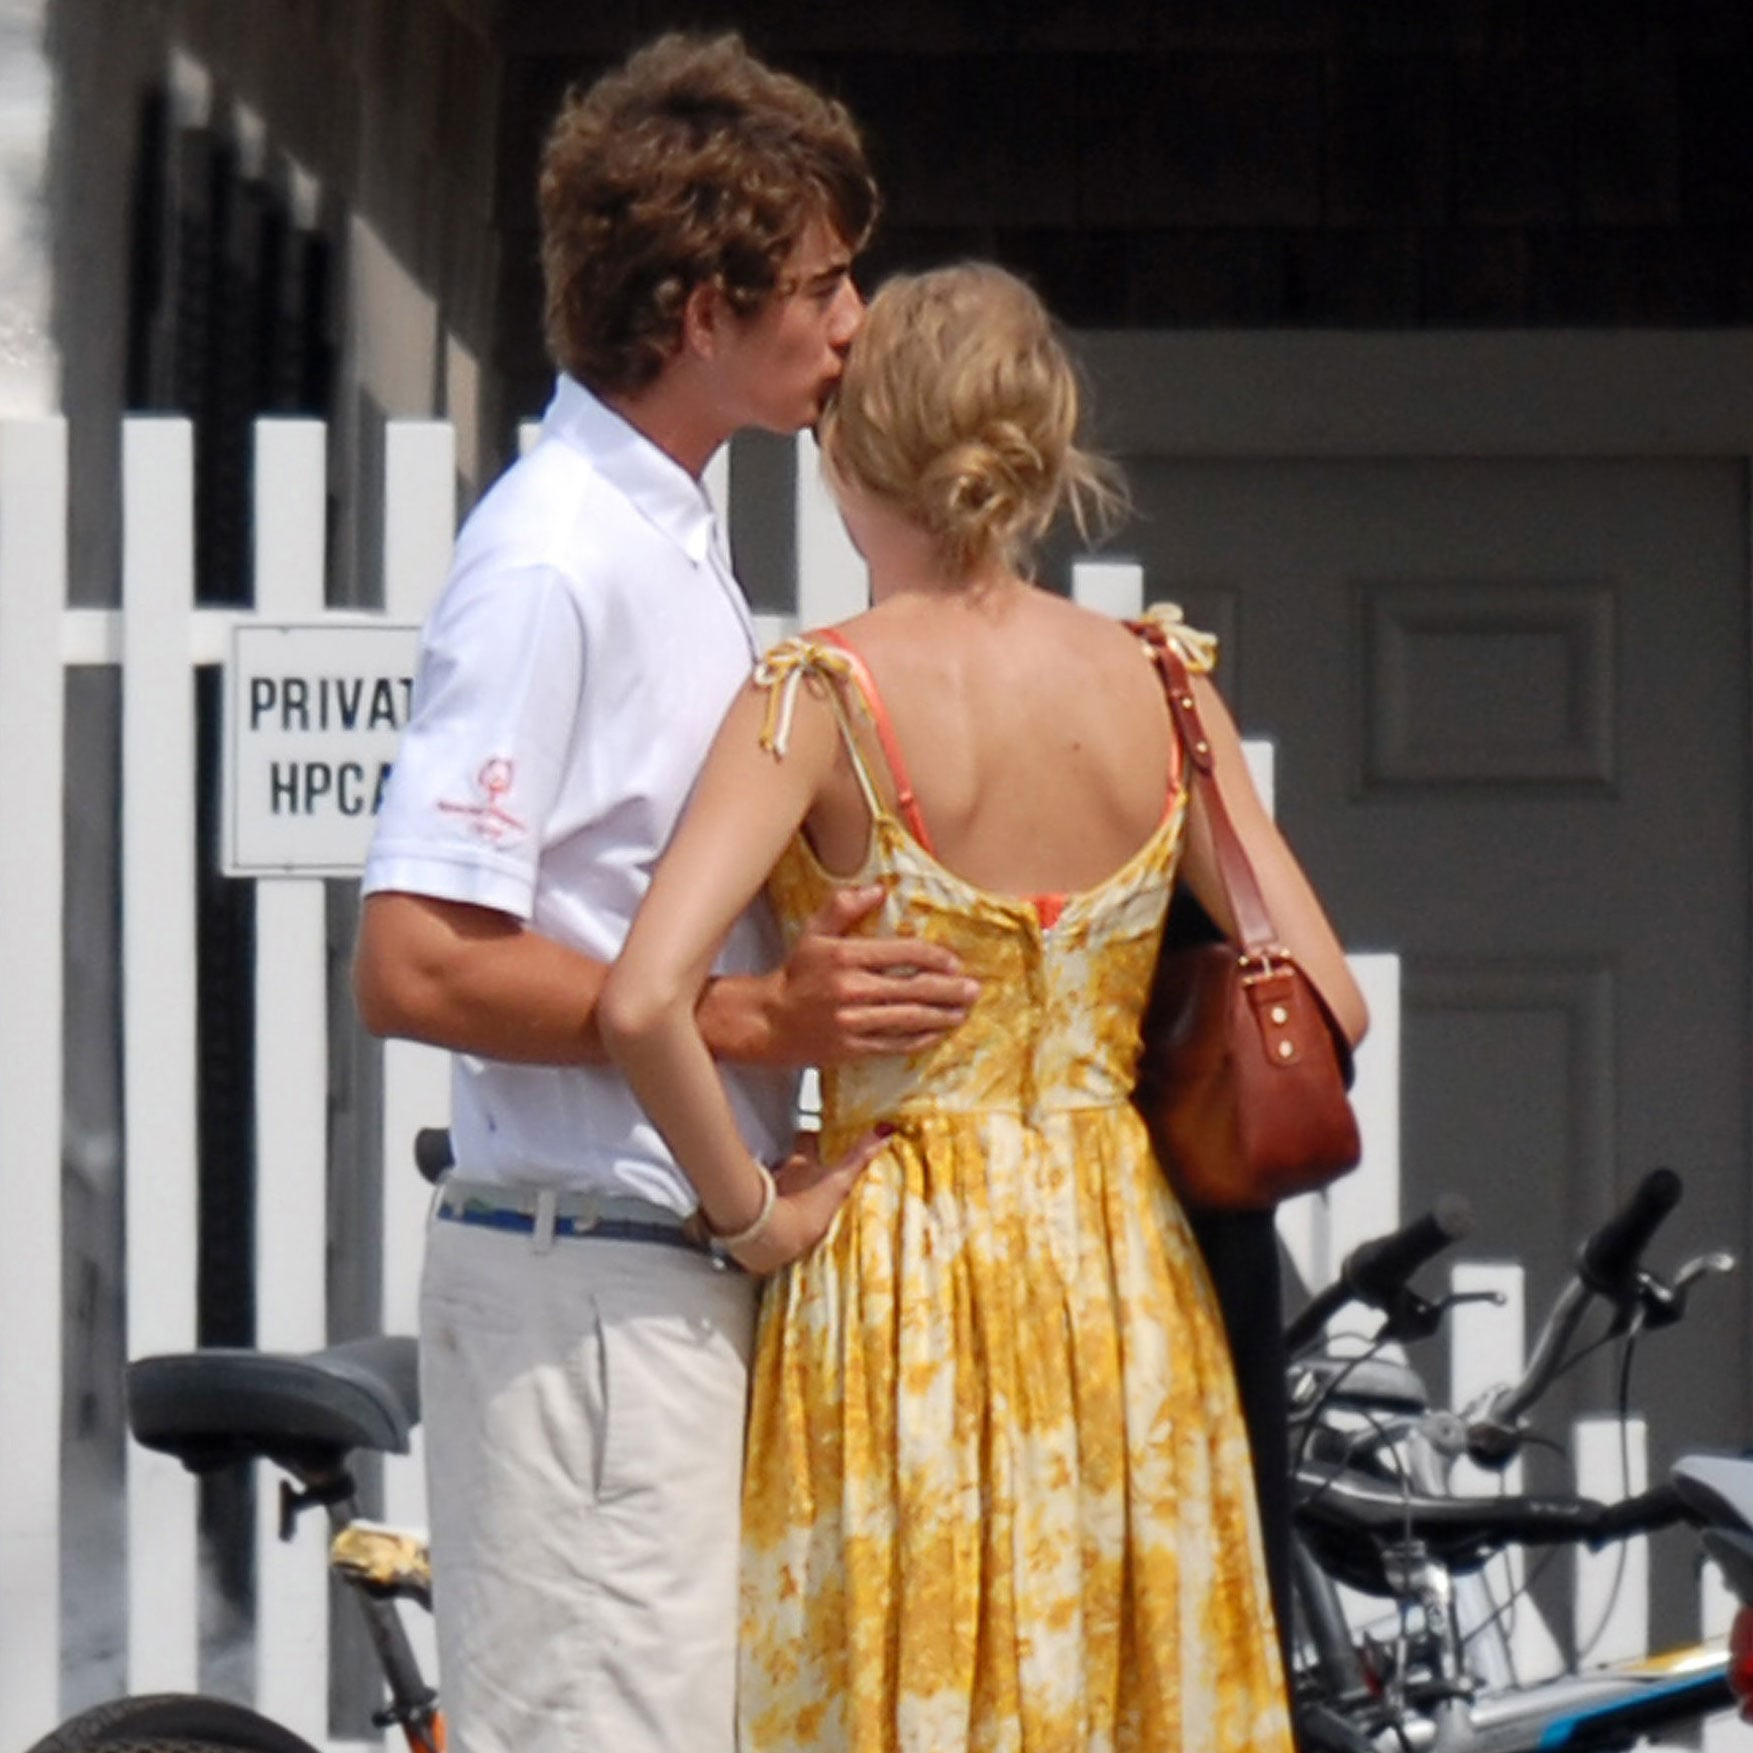 Taylor Swift And Conor Kennedy Hugging Pictures Popsugar Celebrity